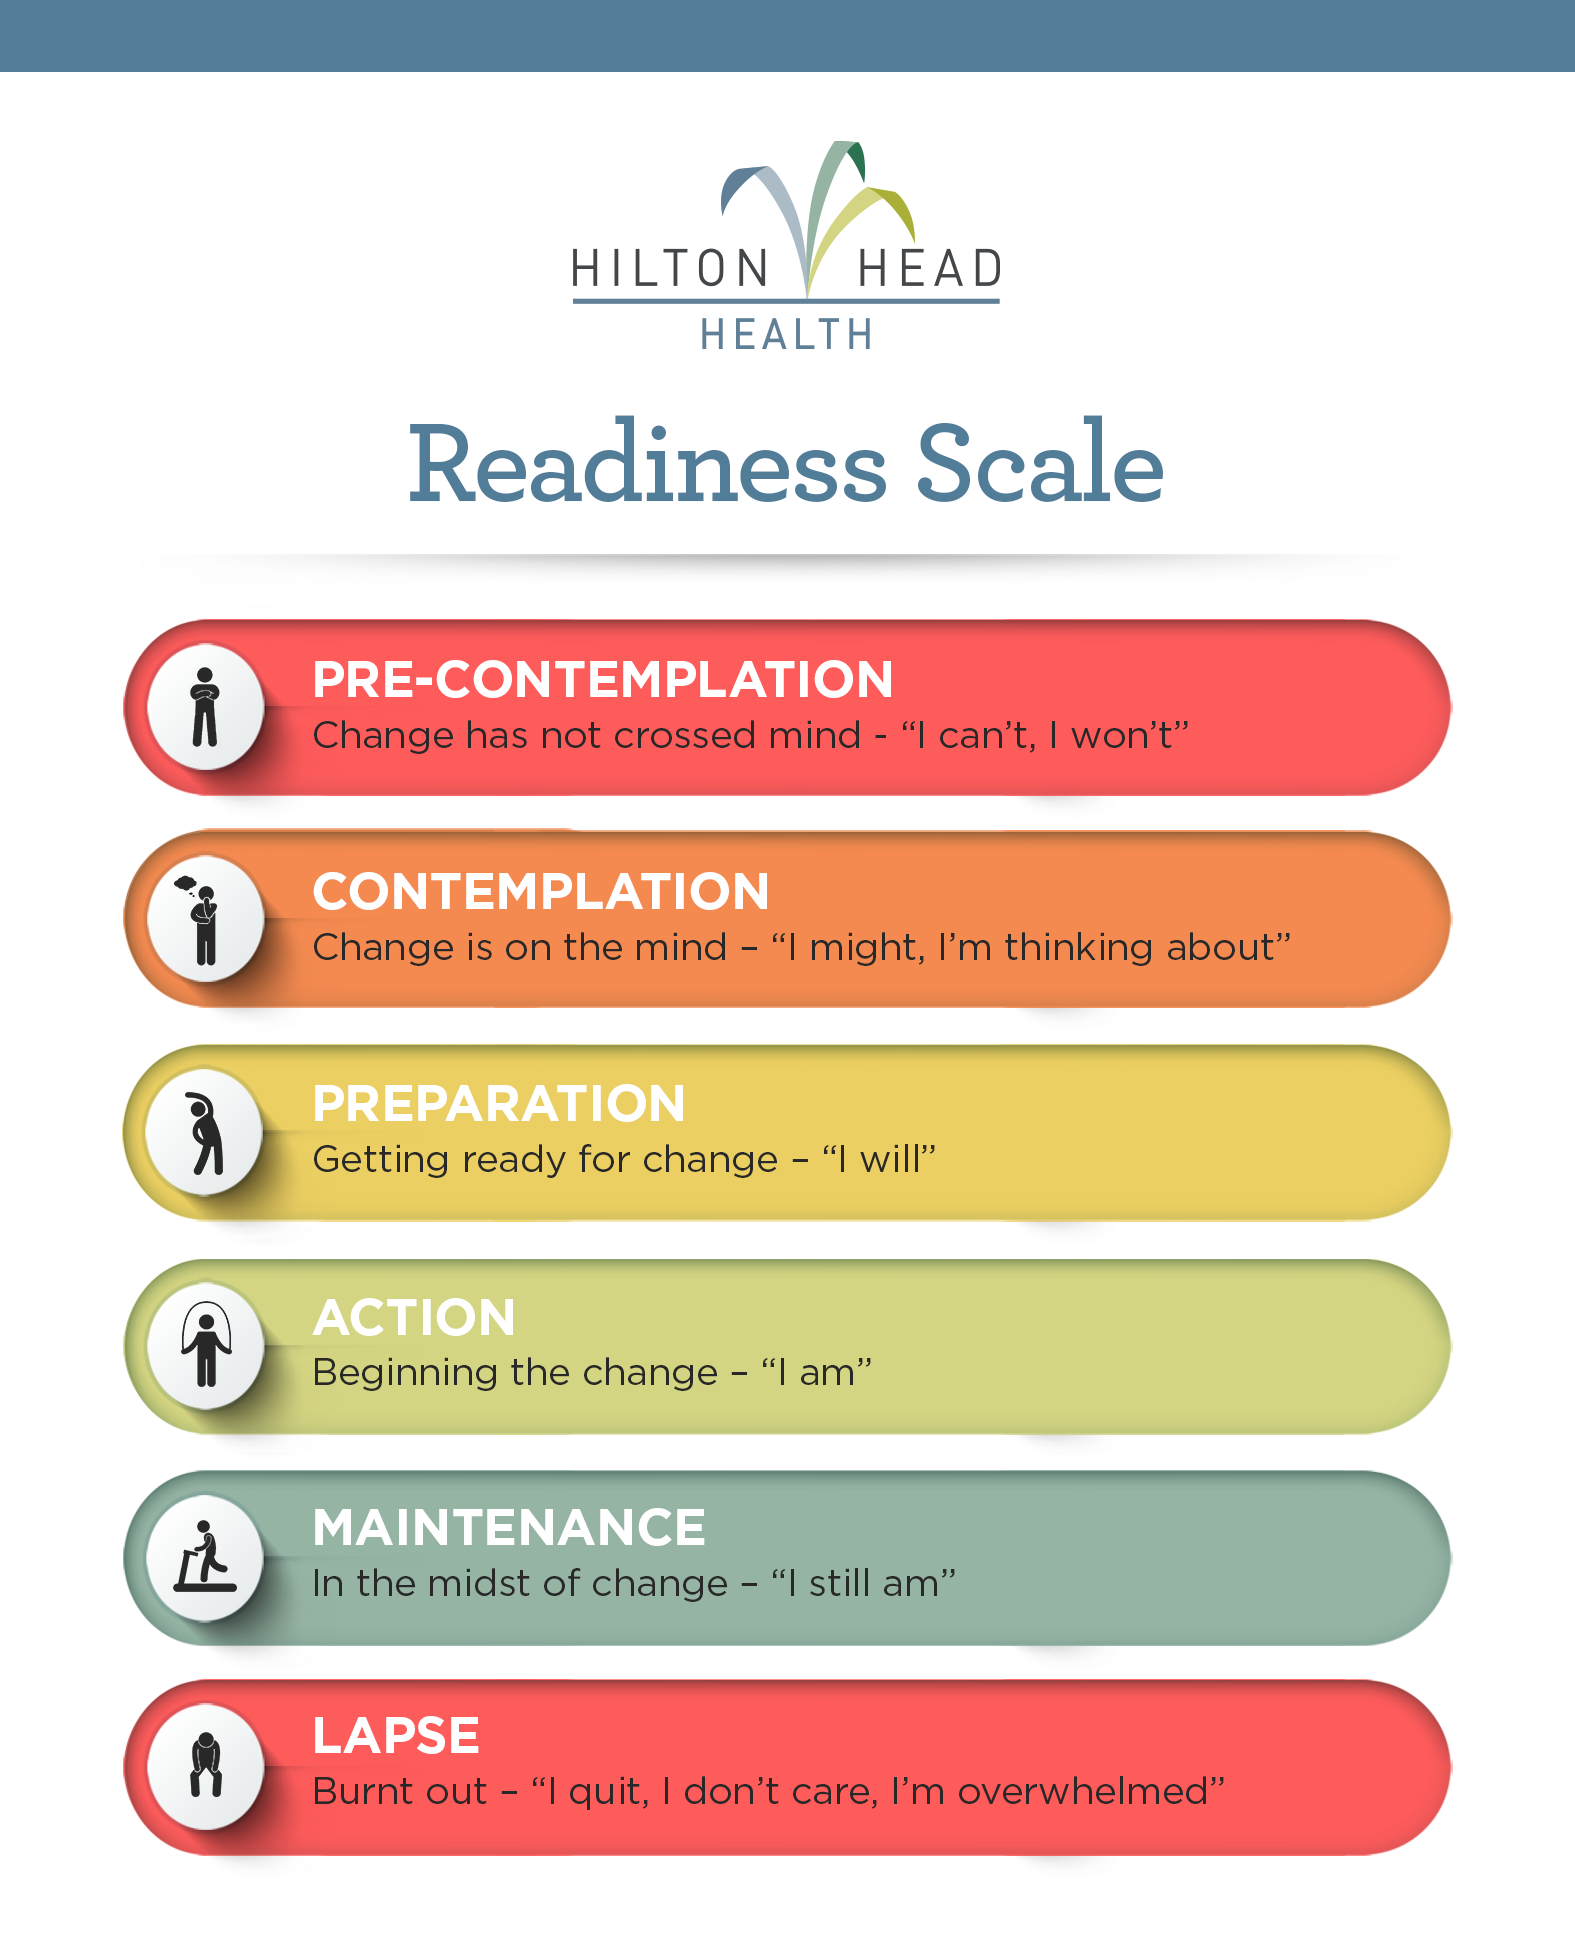 H3 Readiness Scale